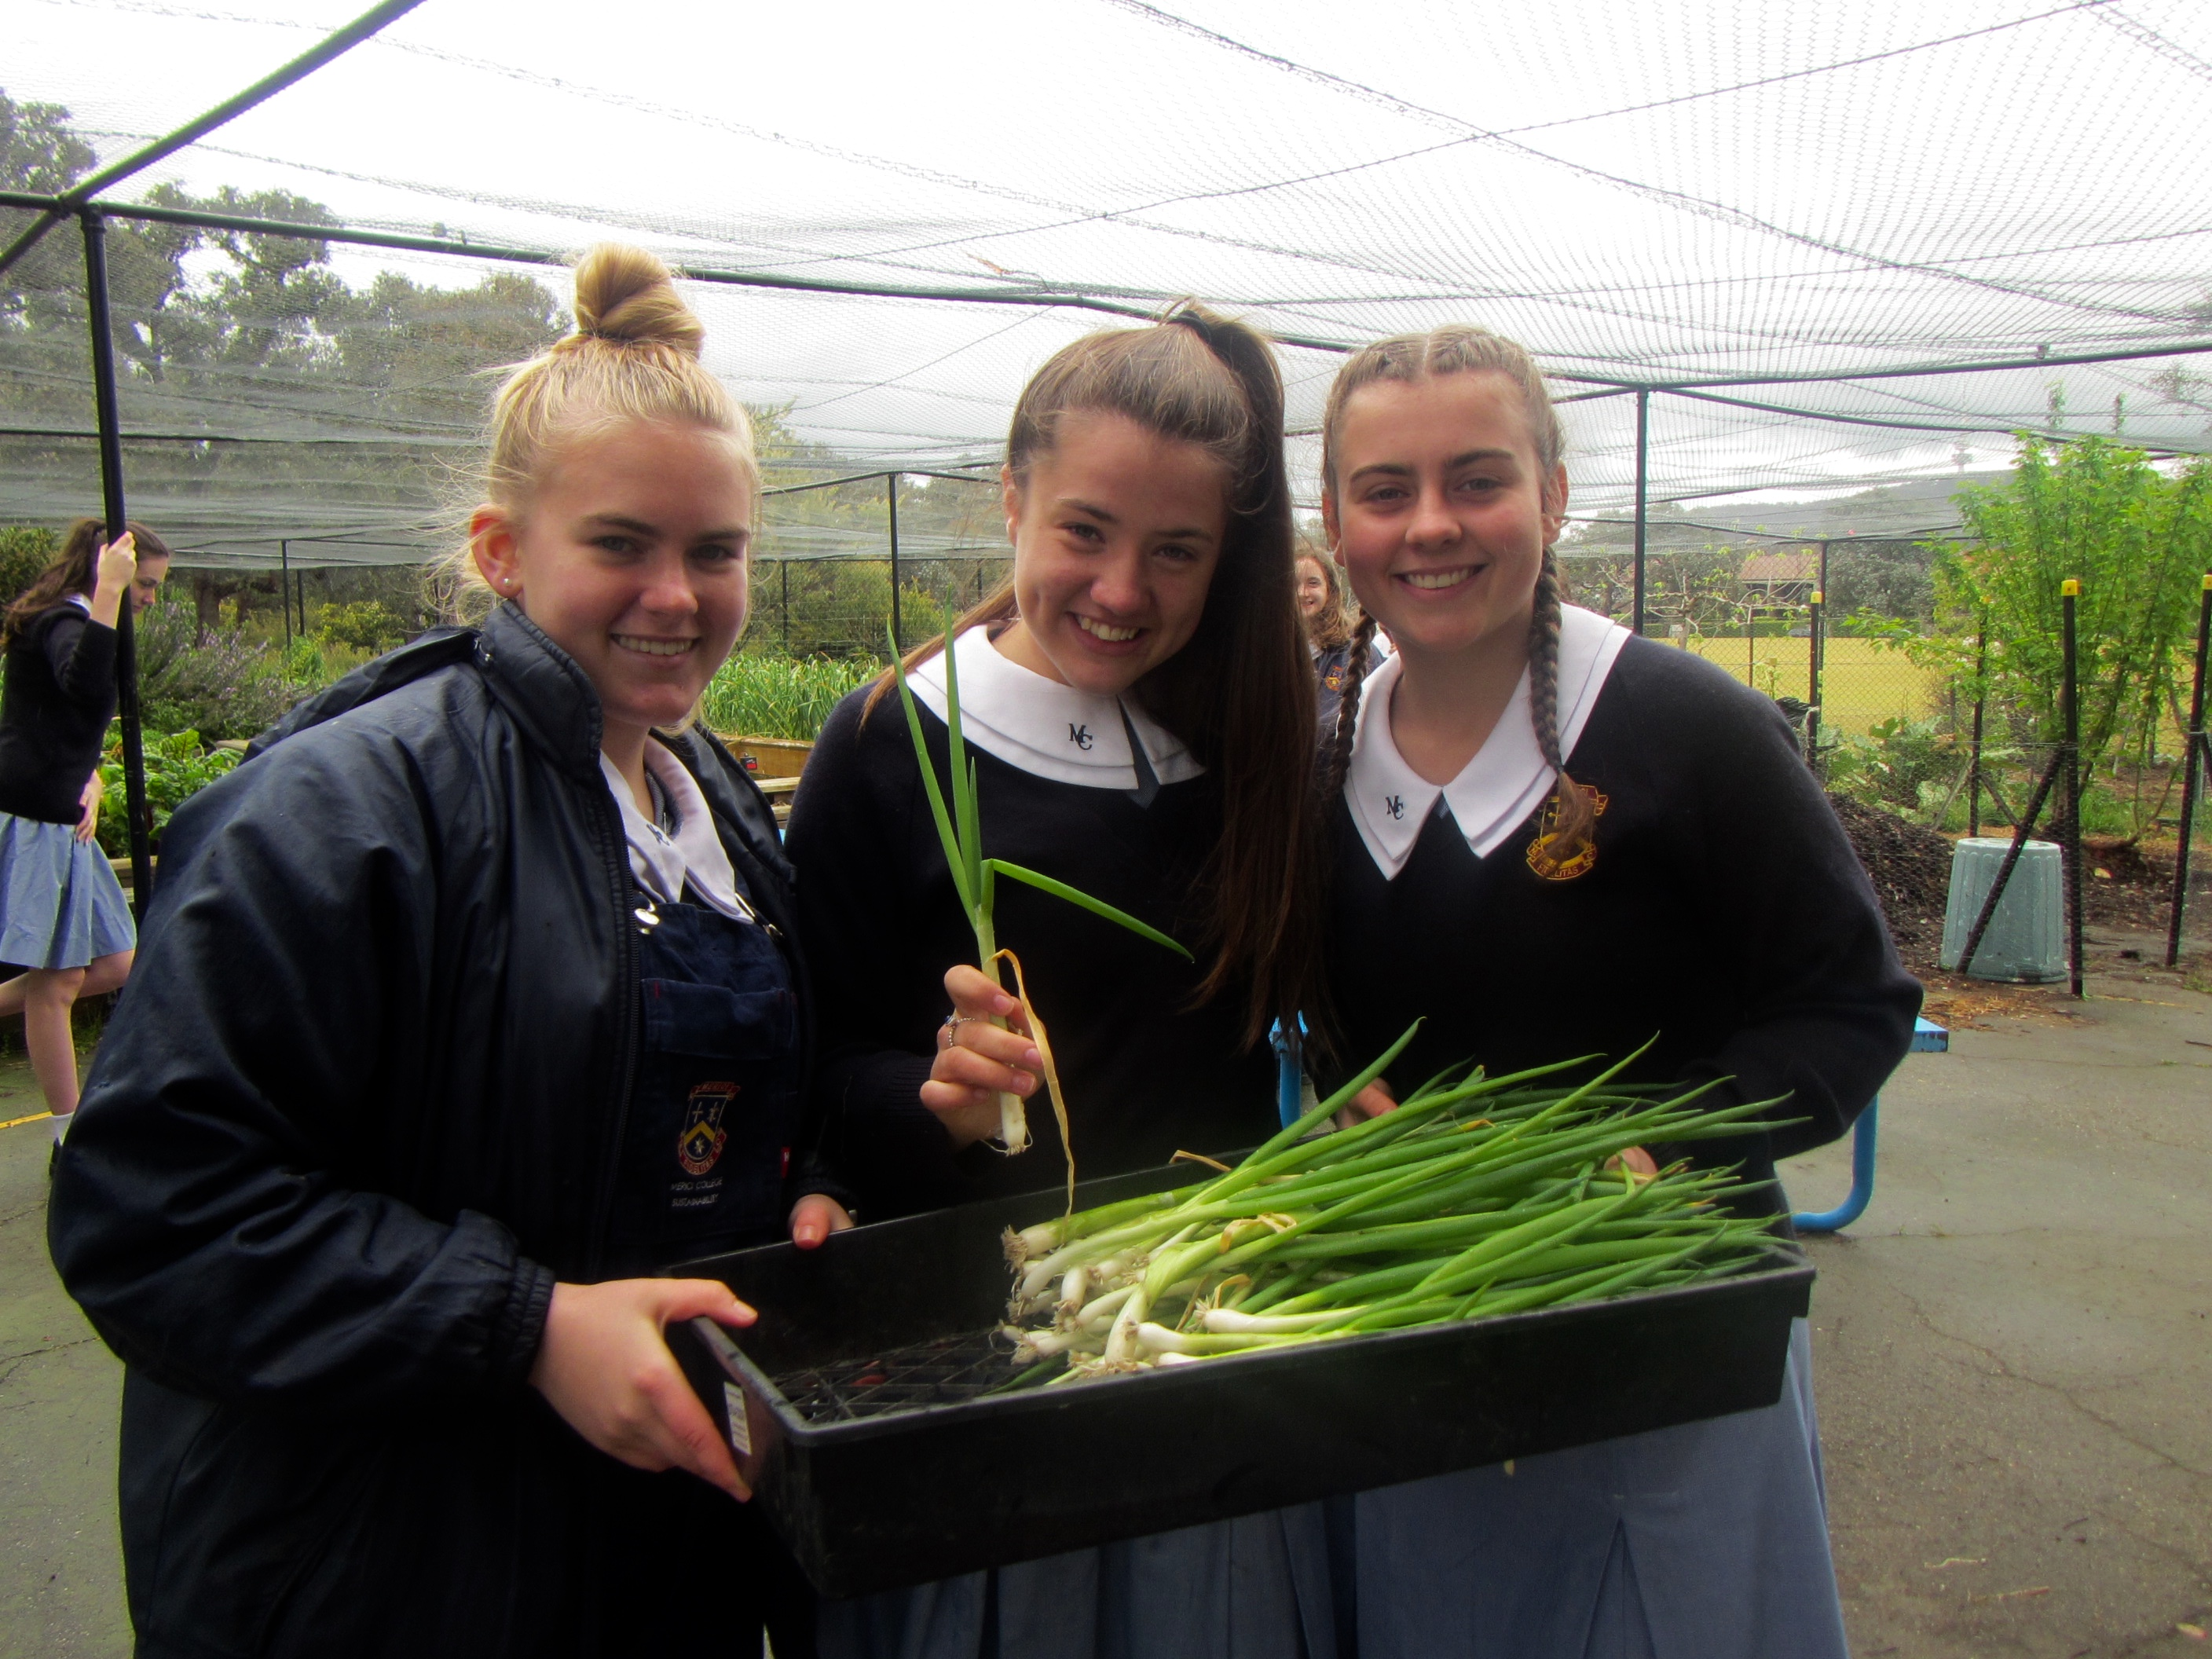 Three students showing the spring onions they grew in their school garden